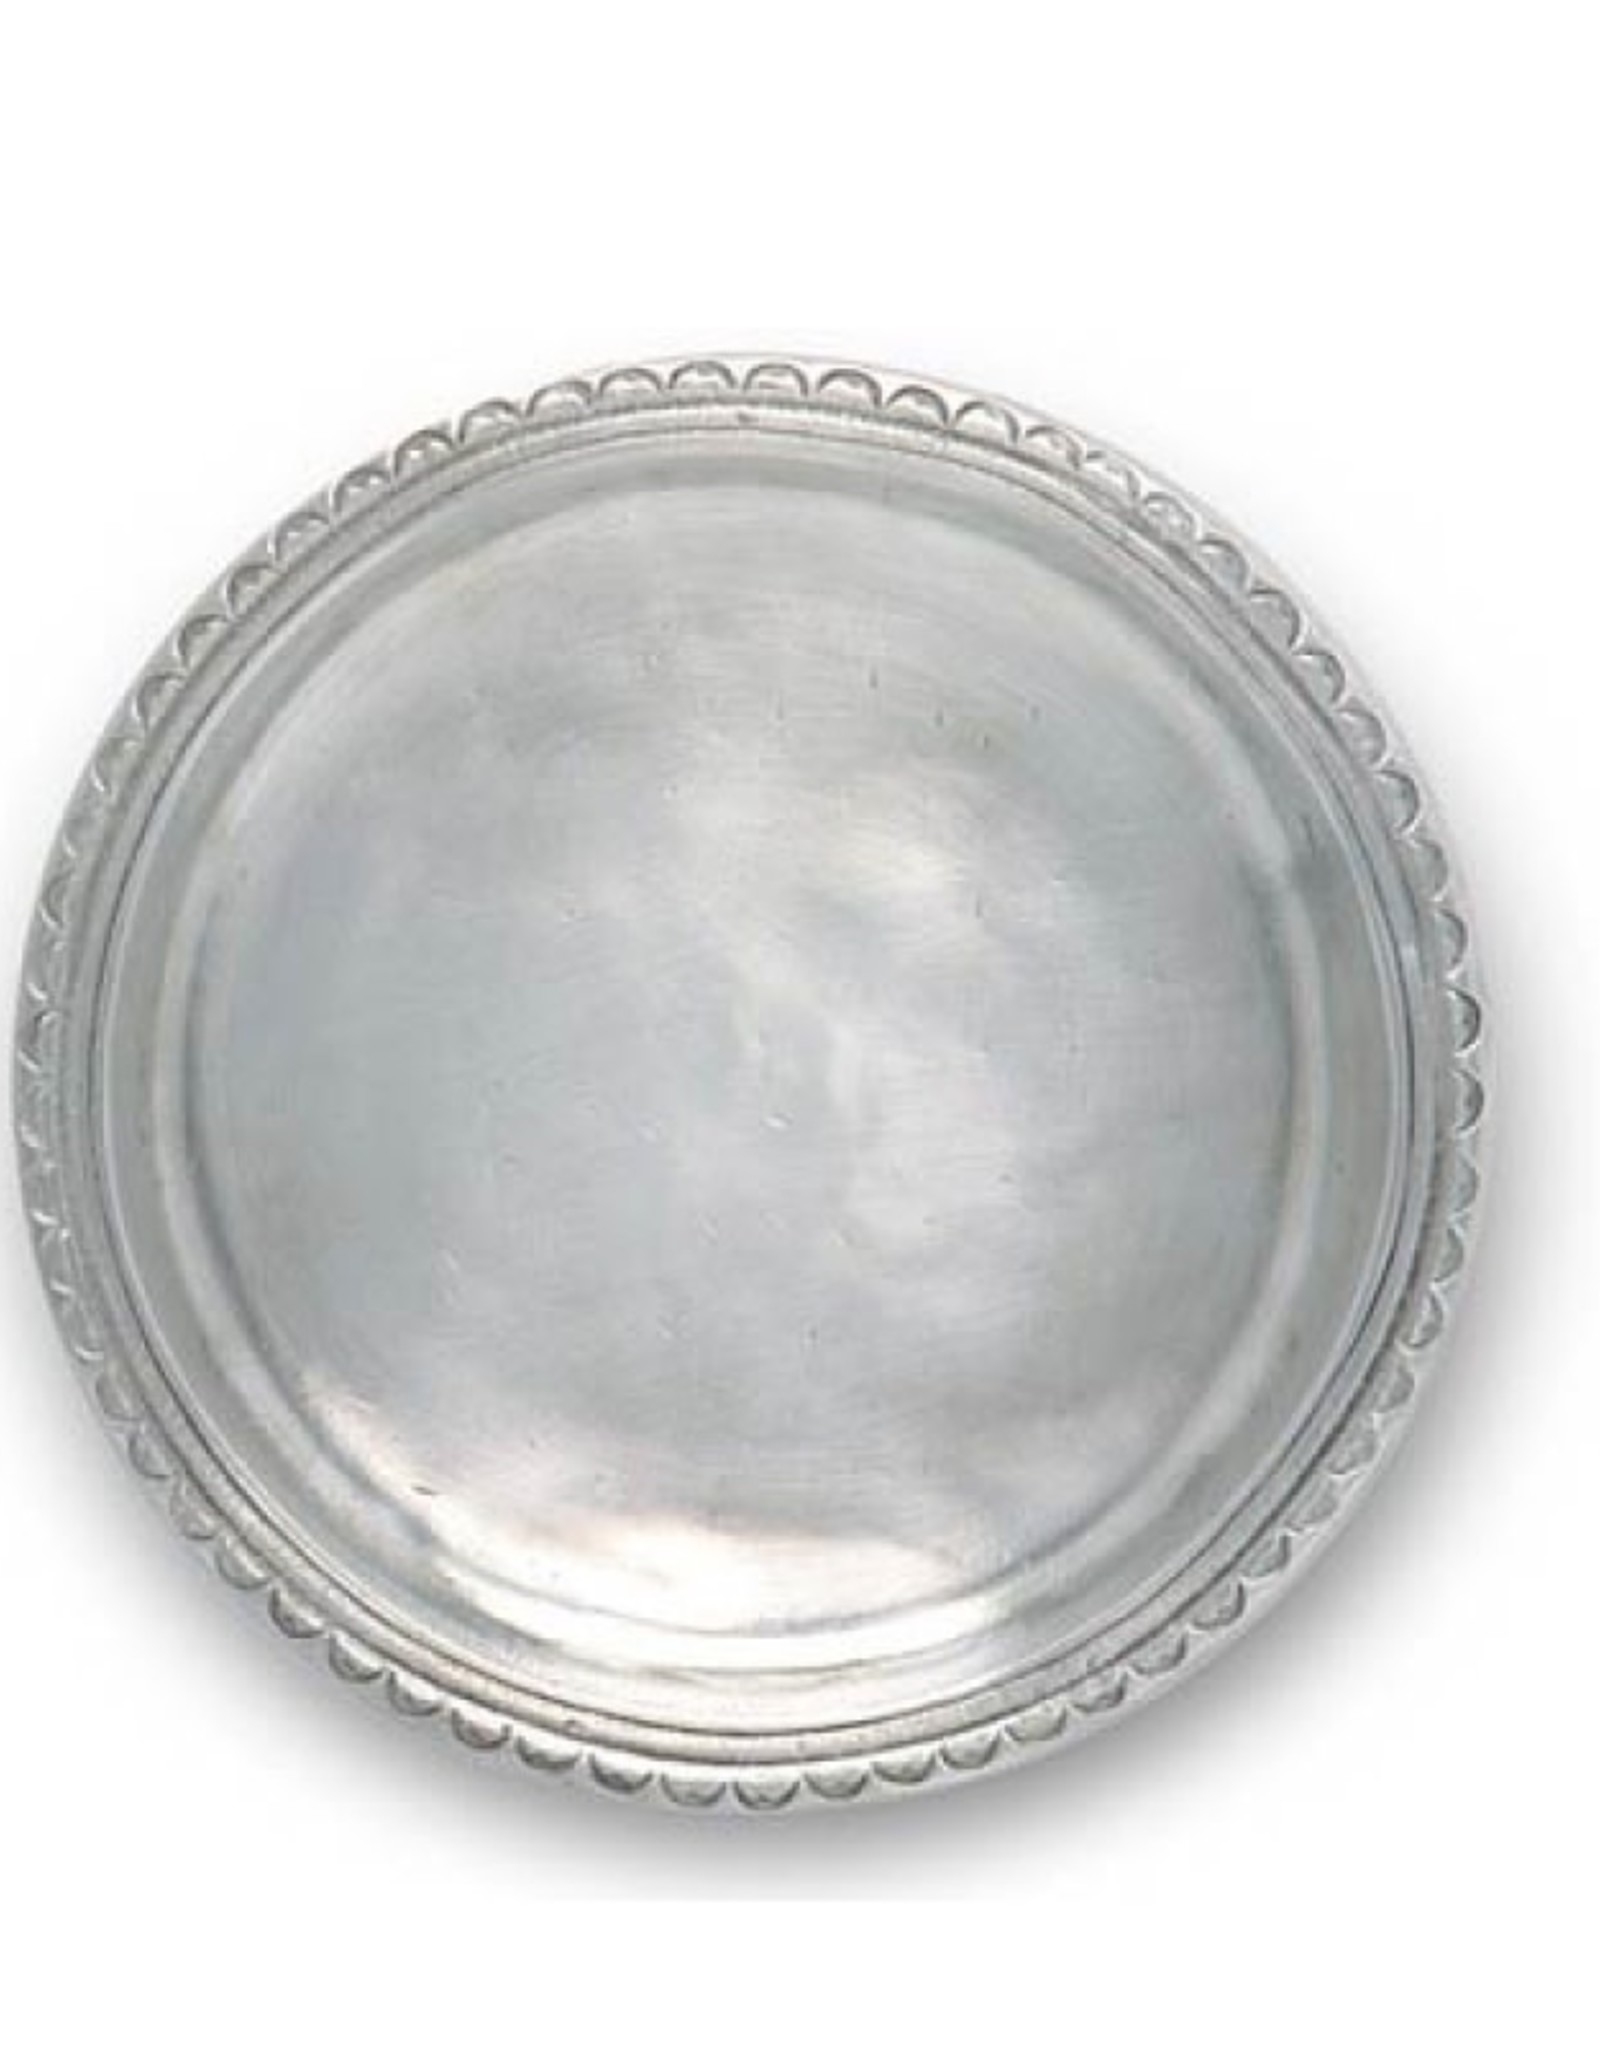 Match Scallop Rim Bottle Coaster